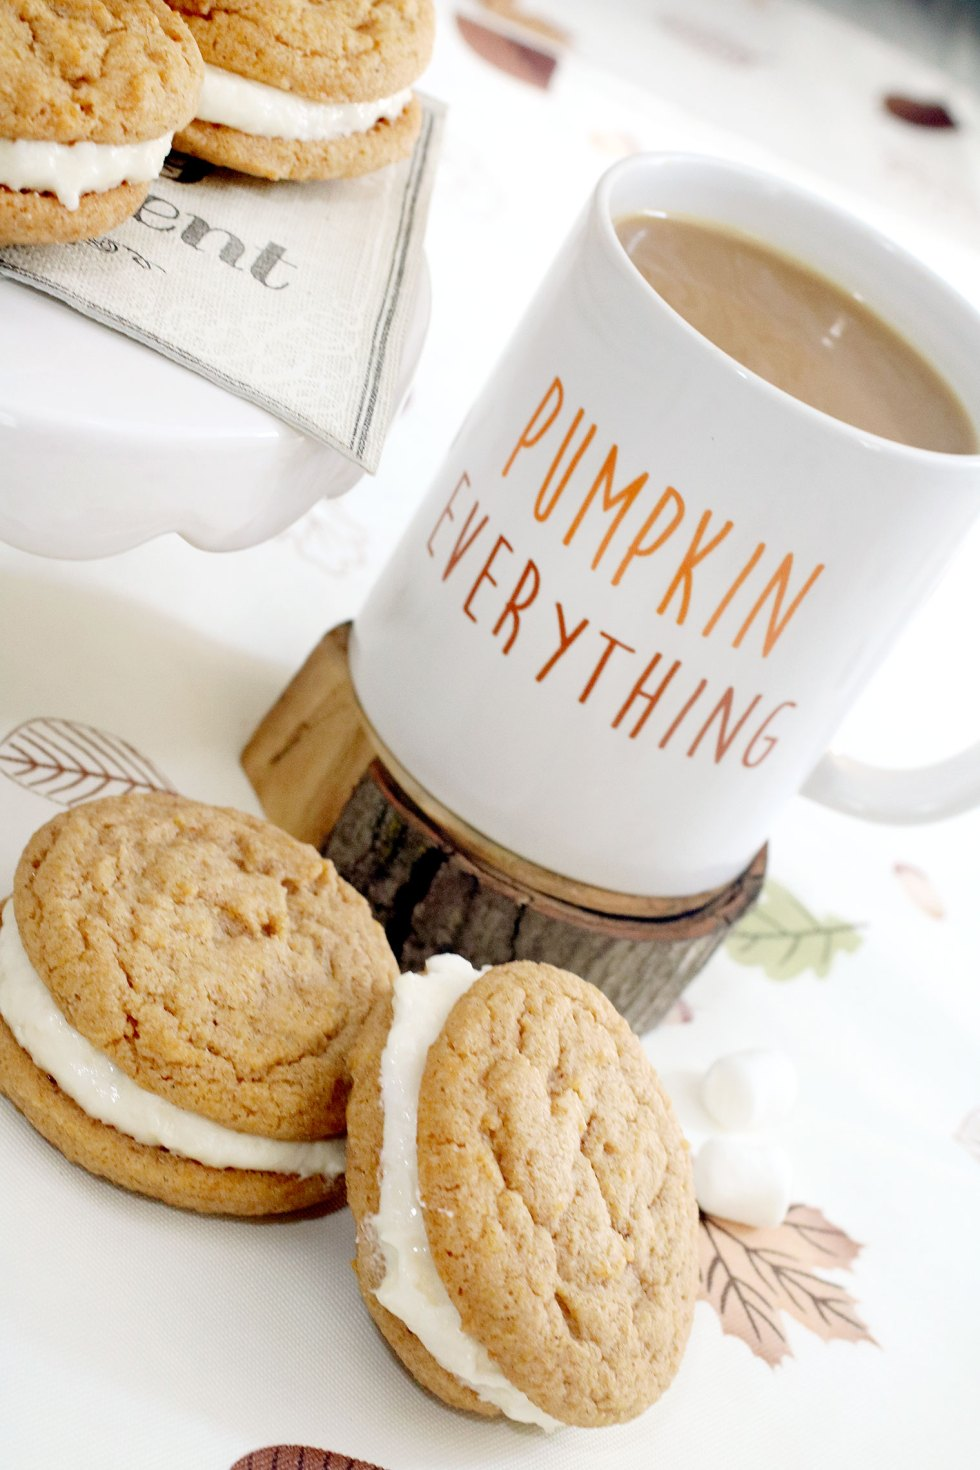 Pumpkin Spice and Marshmallow Whoopie Pies - Curly Crafty Mom - HMLP 157 Feature